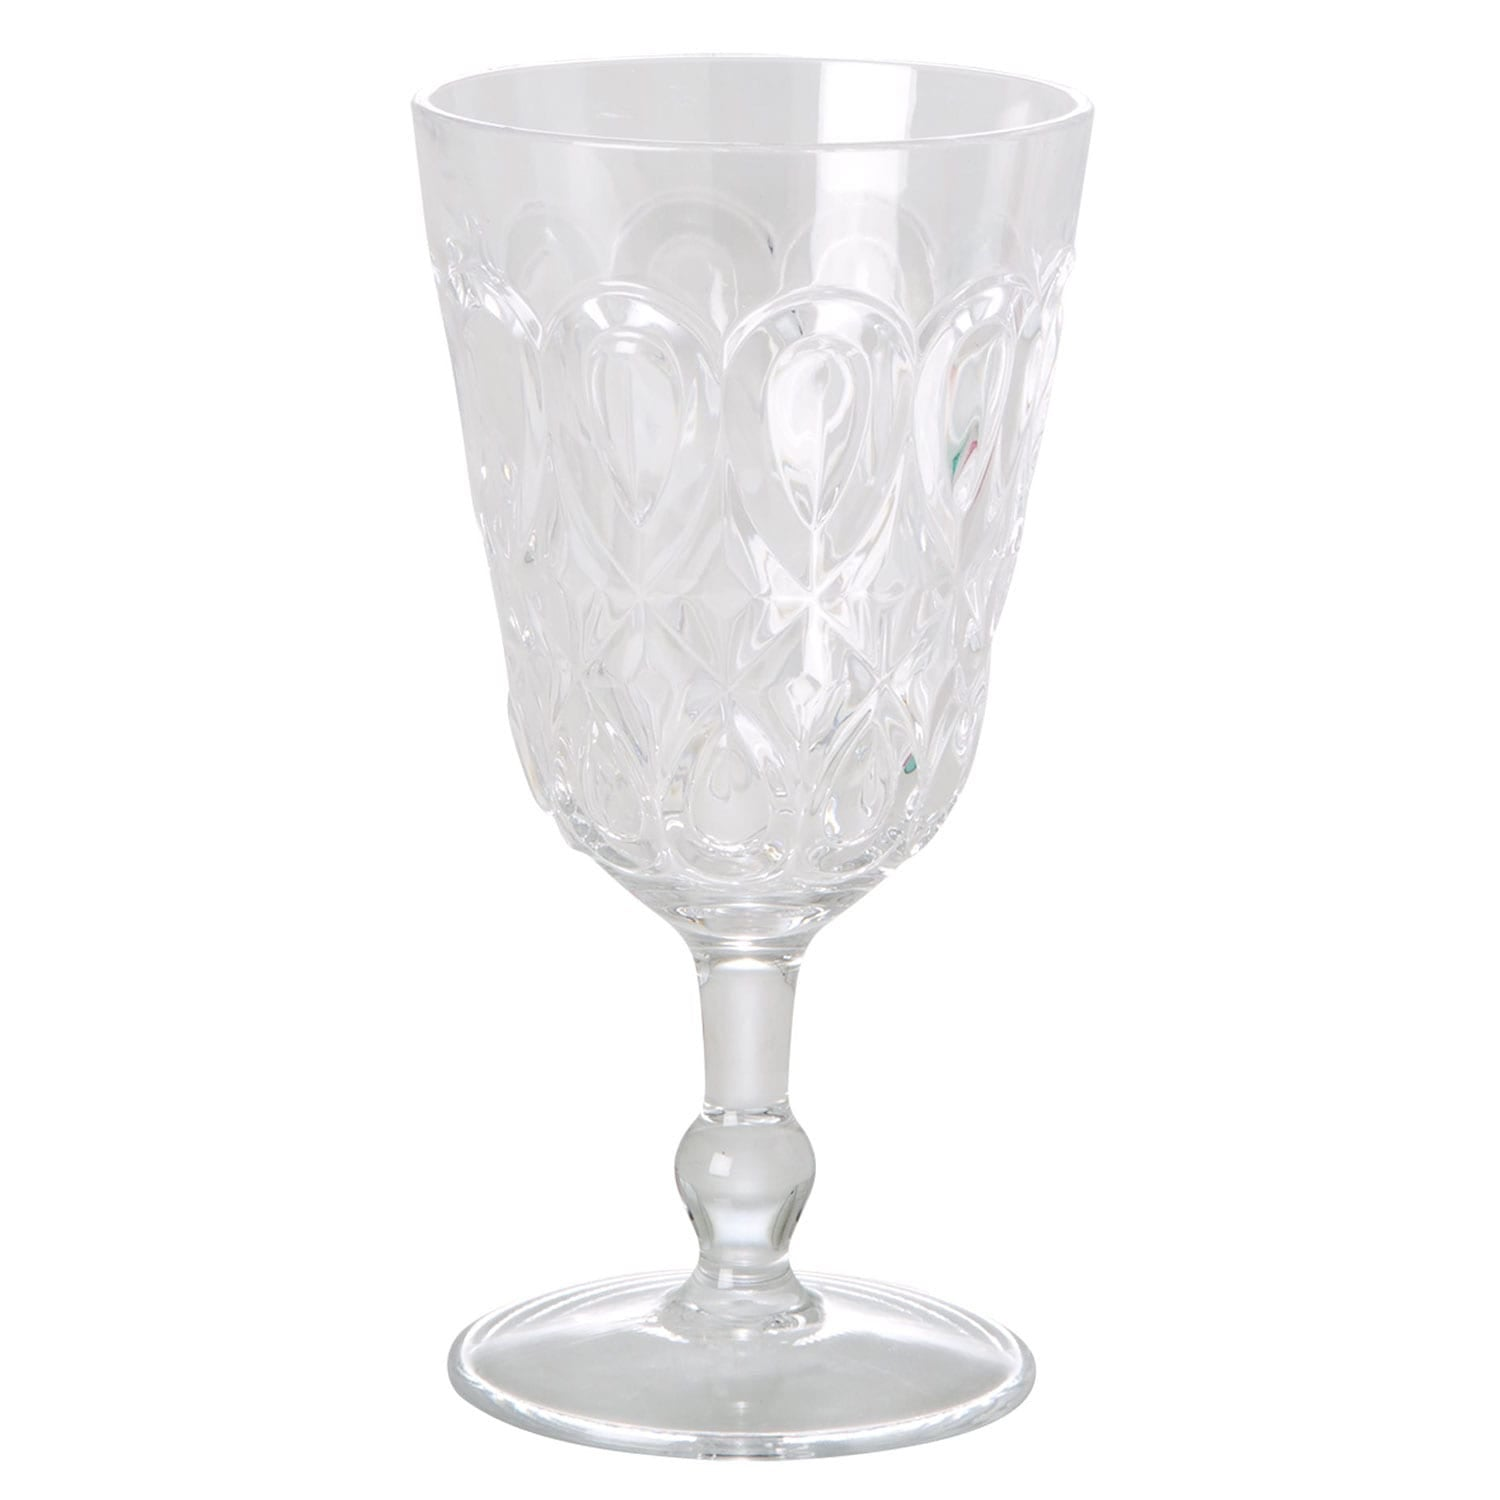 Clear Acrylic Wine glass